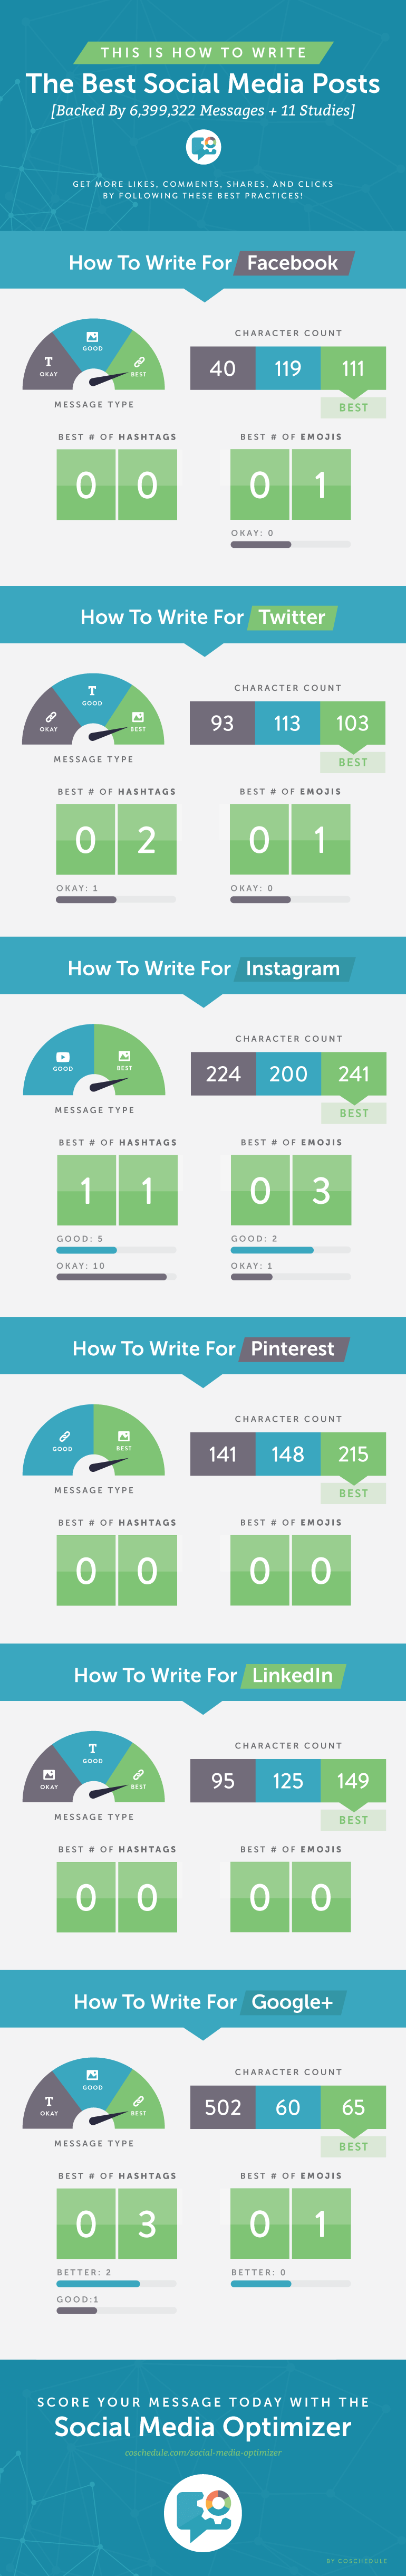 Writing for Social Media Infographic